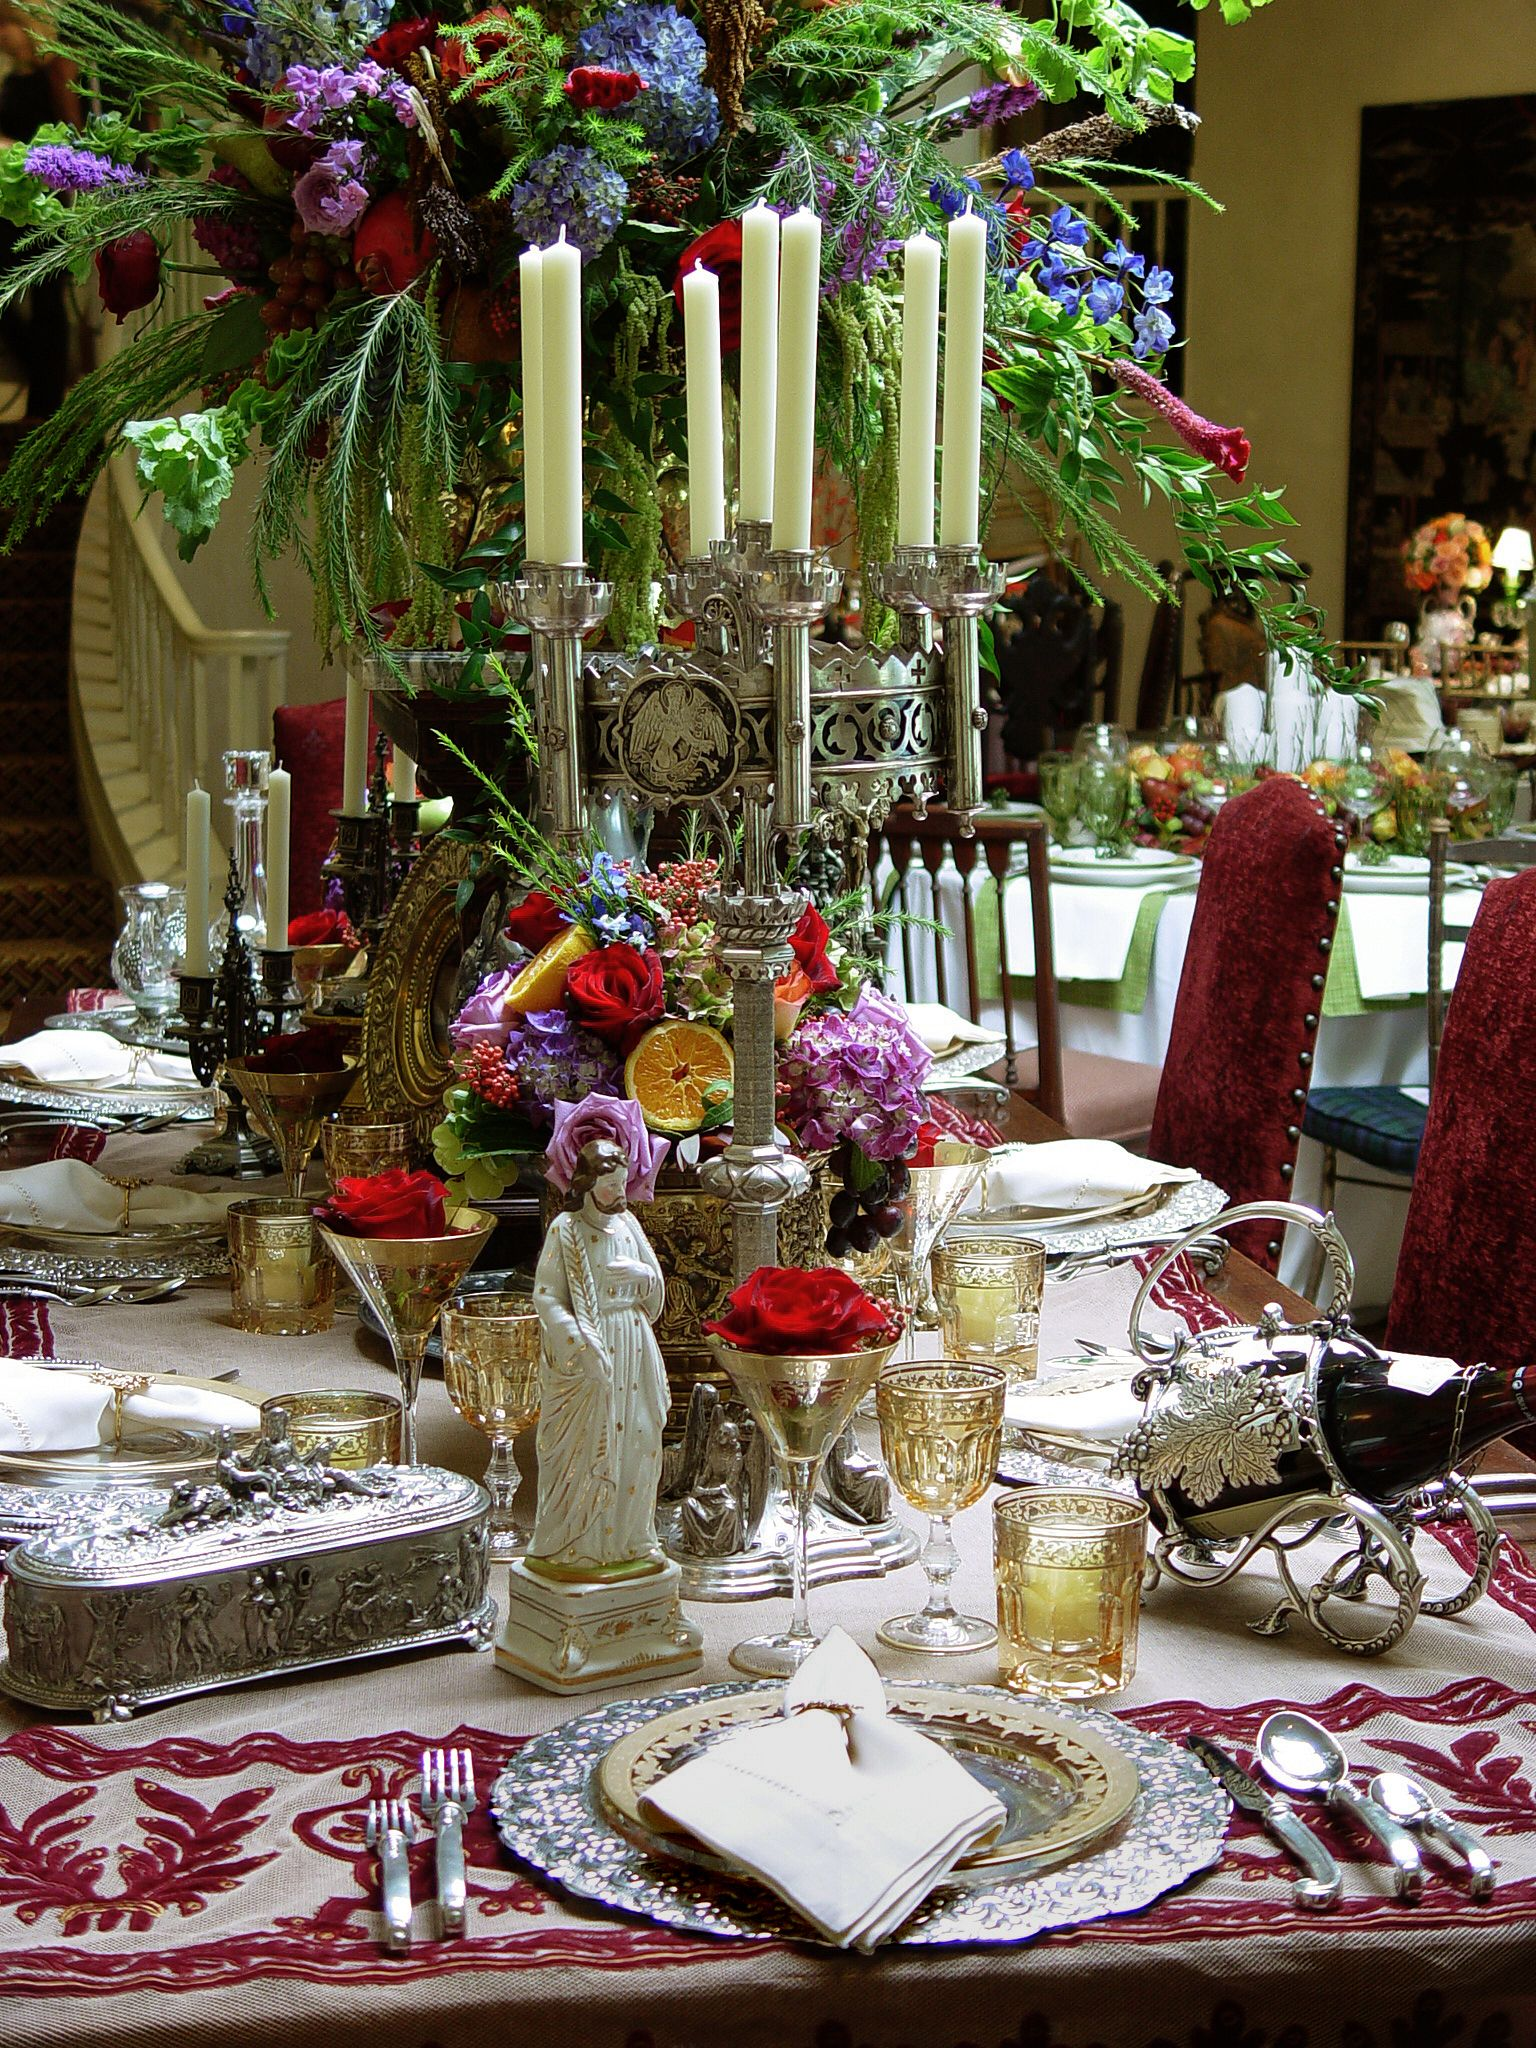 Pin By Inessa Stewart S Antiques On Antique Christmas Inspirations Christmas Decorations Dinner Table Christmas Dinner Table Christmas Table Settings